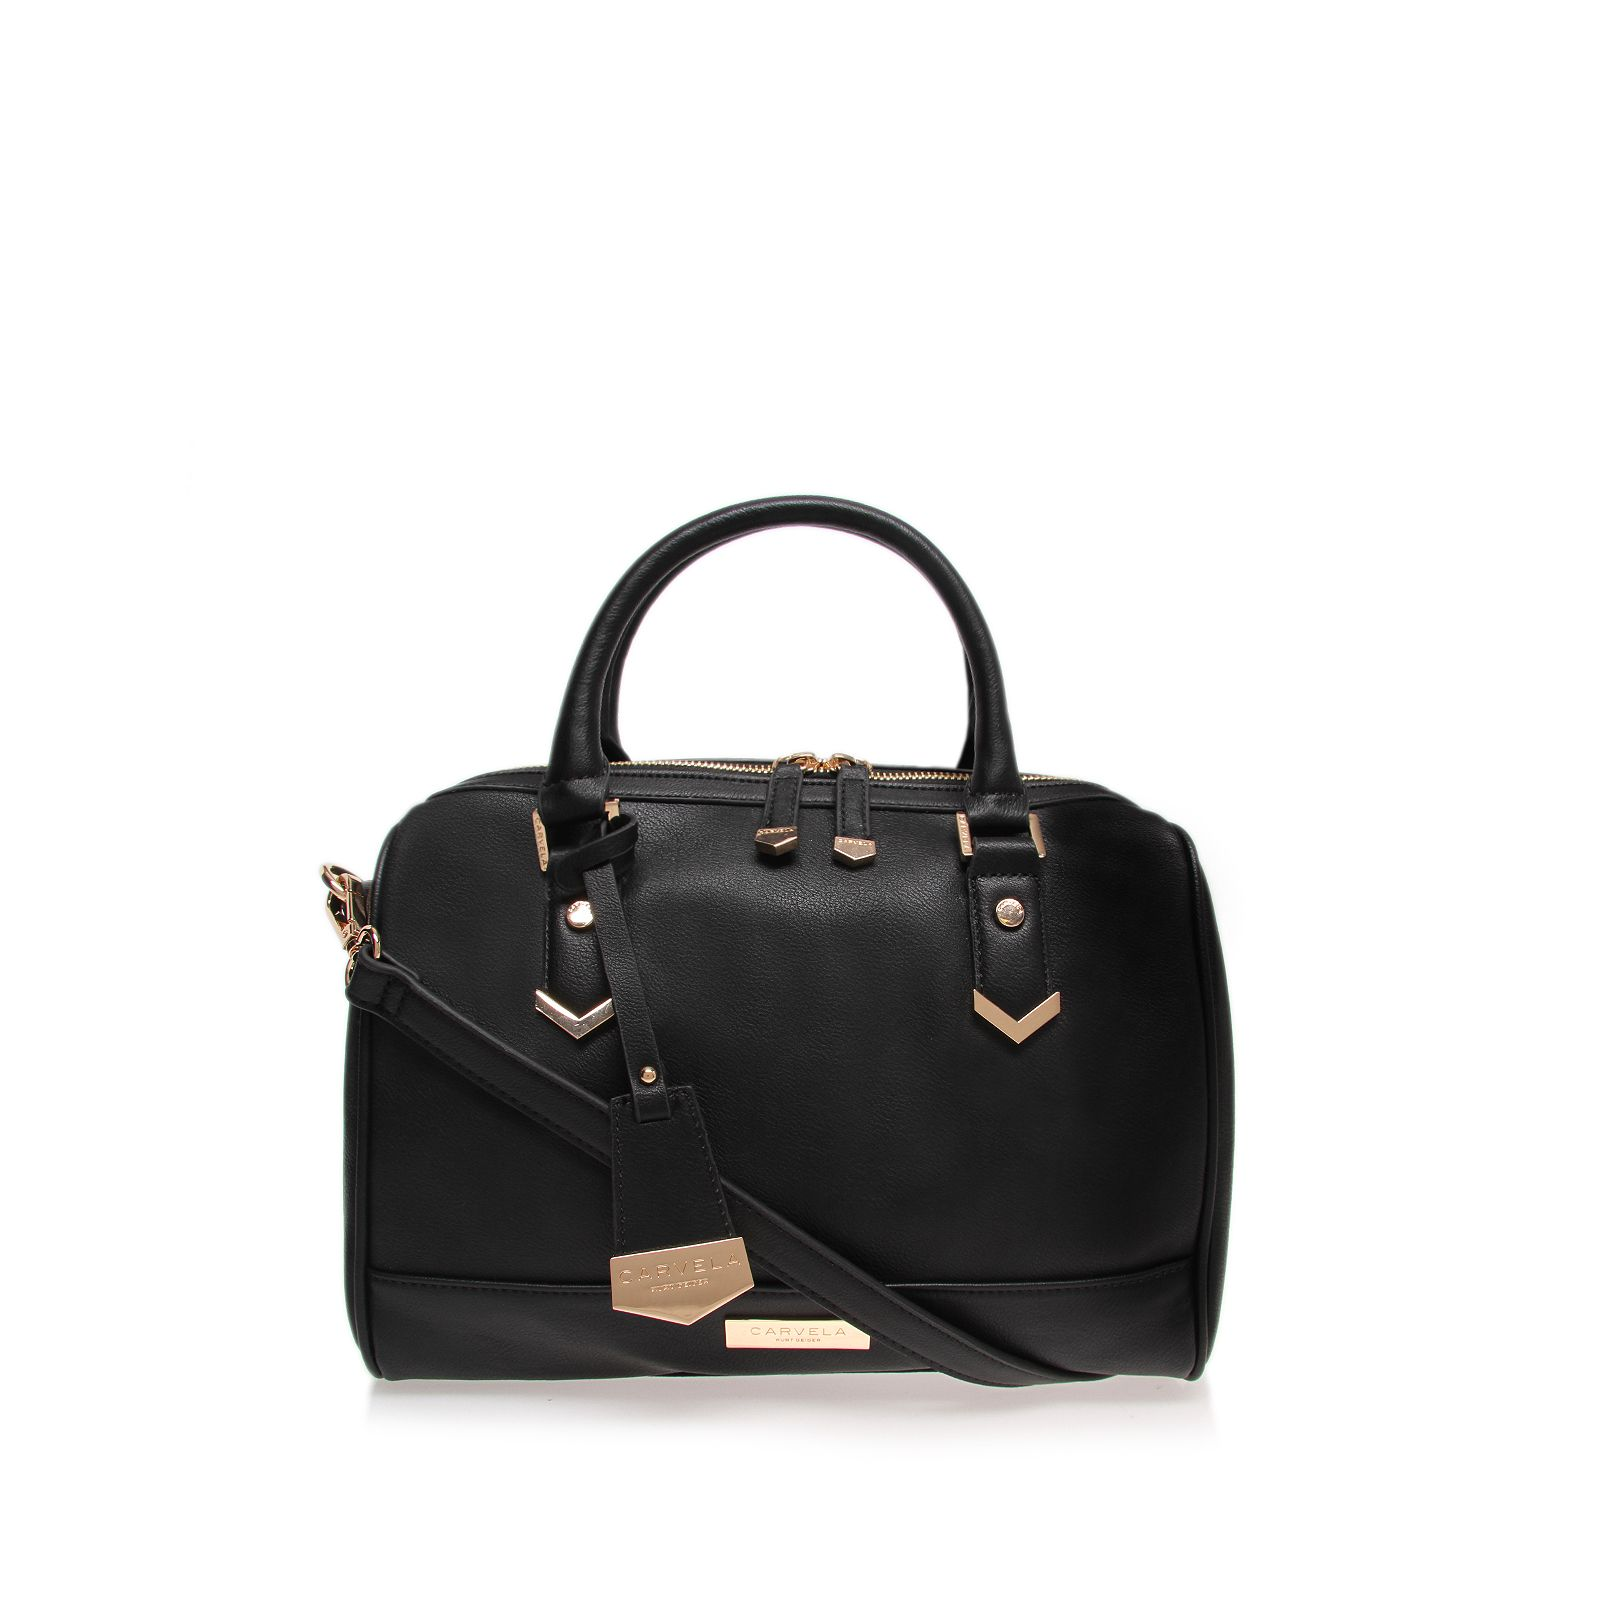 Chelsea bowling black shoulder bag